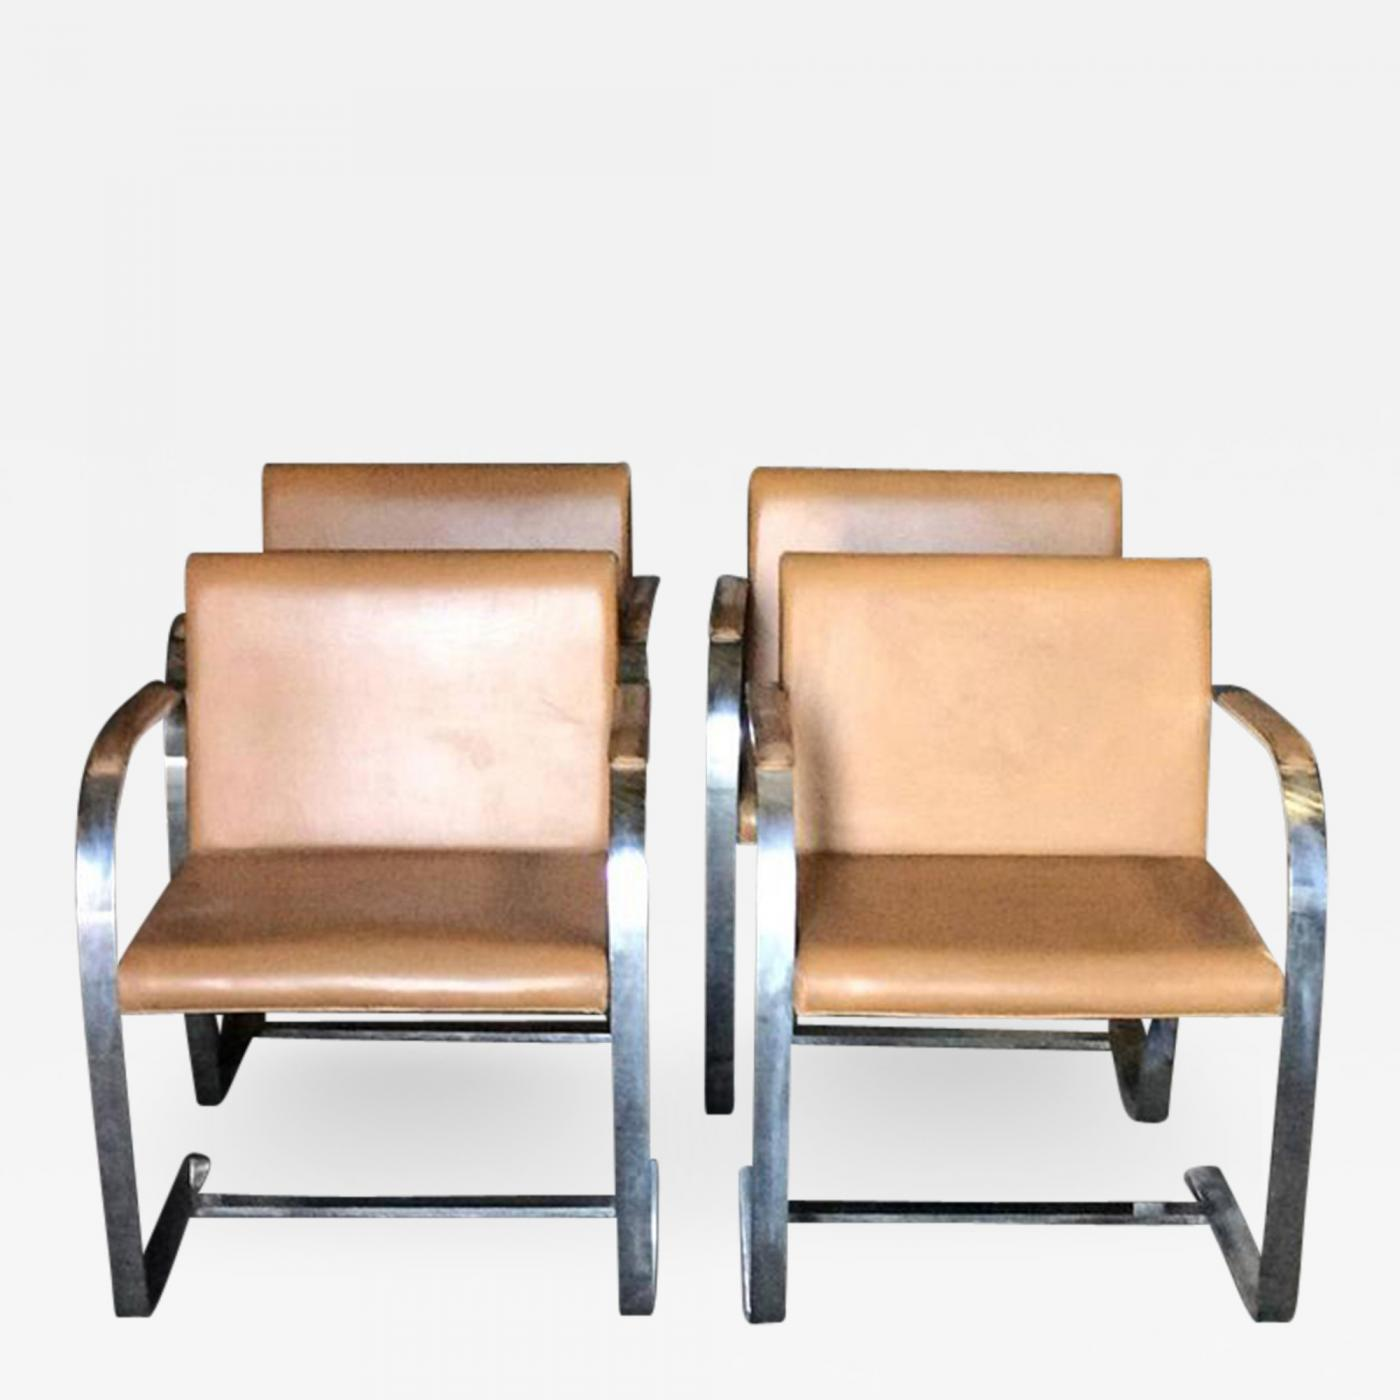 """Chaise Brno Mies Van Der Rohe ludwig mies van der rohe - mies van der rohe for knoll studio """"brno flat  bar"""" lounge armchair in leather"""